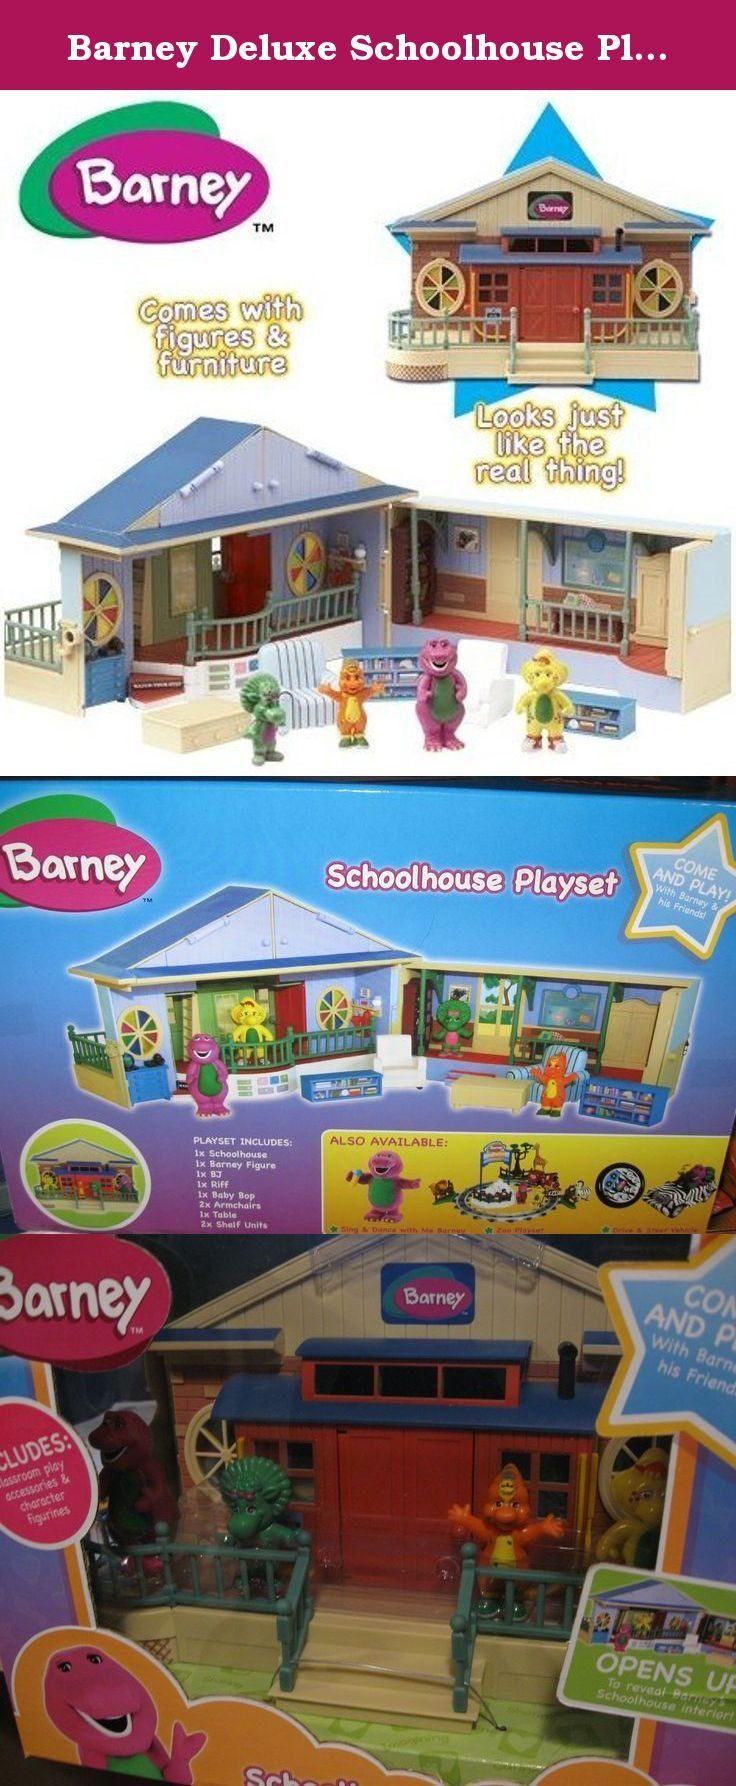 Barney Deluxe Schoolhouse Playset With Play Figures Barney Deluxe